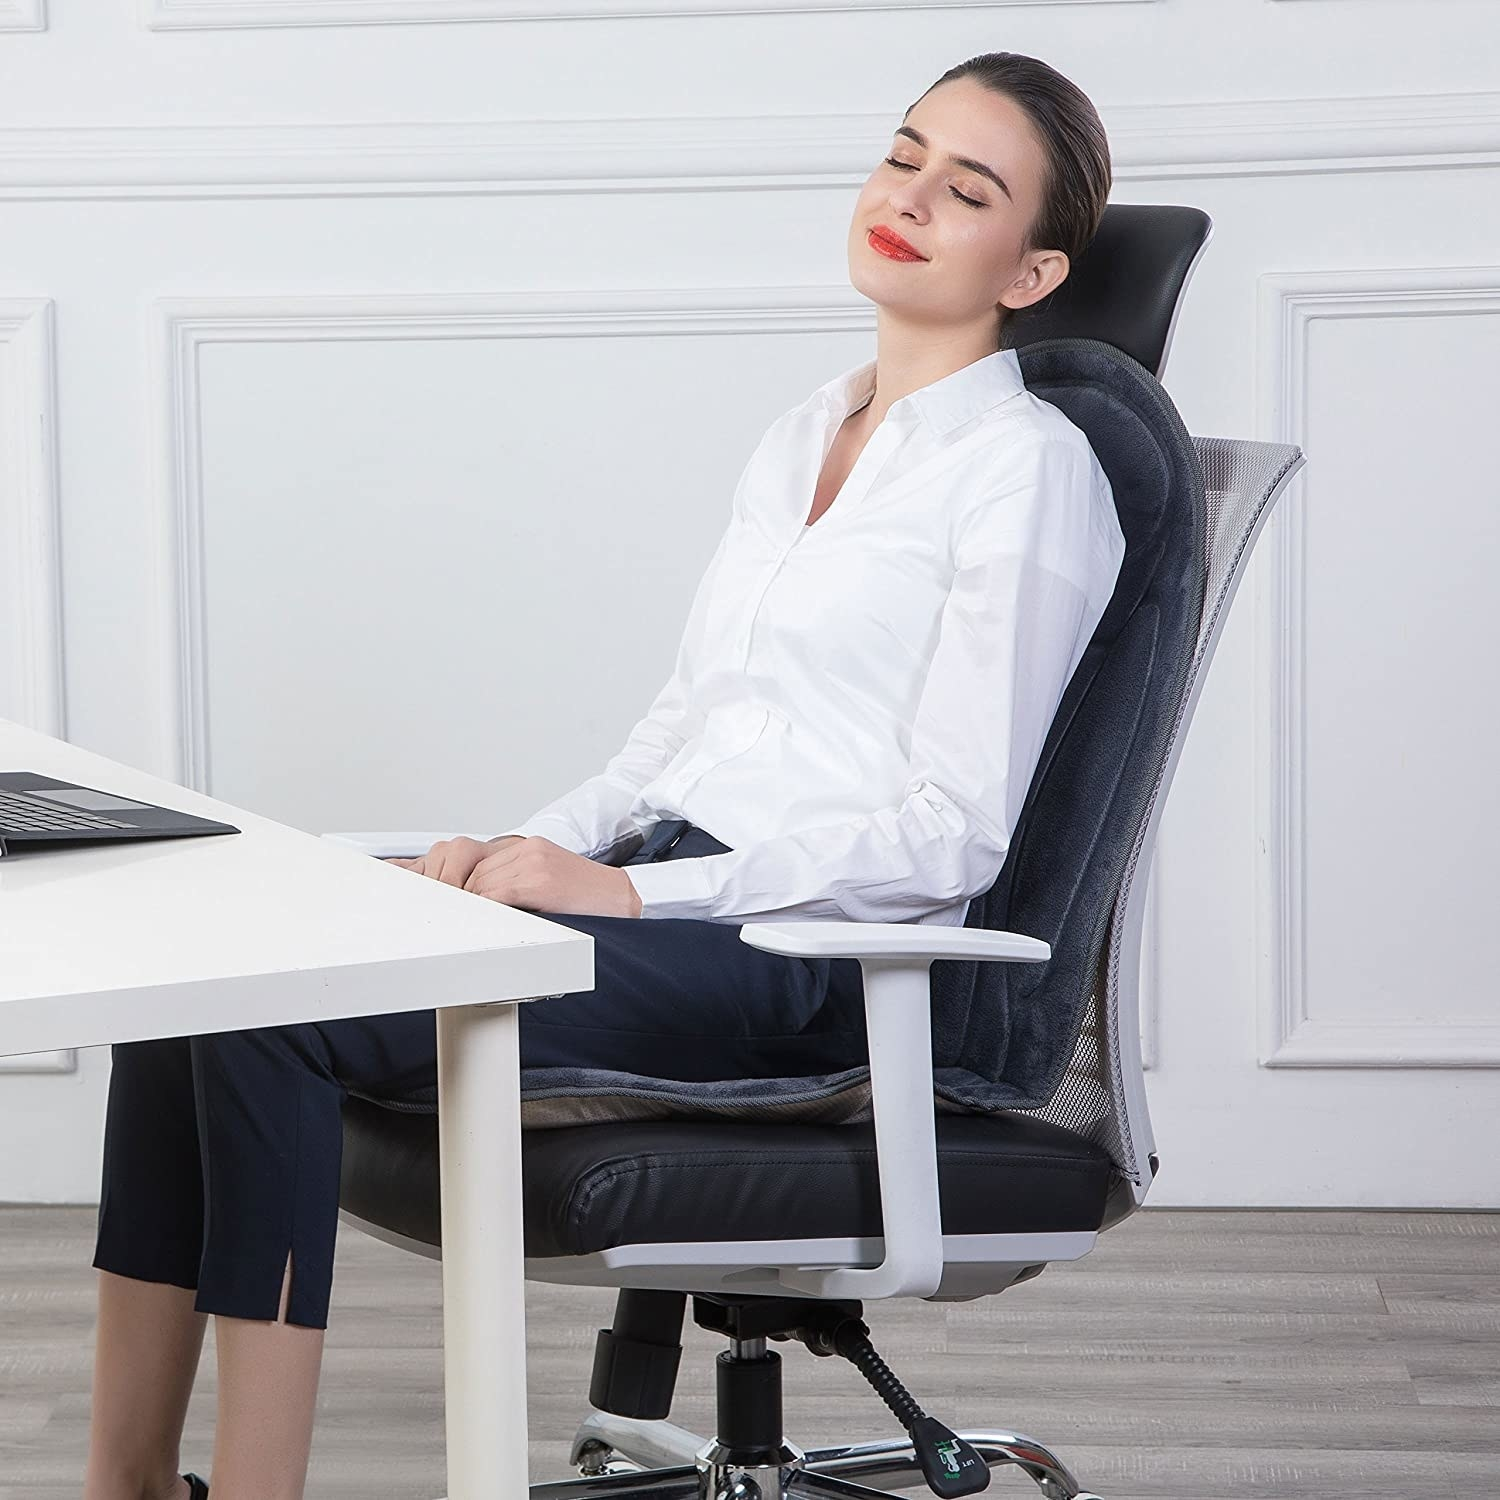 A person relaxing in their computer chair while using the massage seat cushion